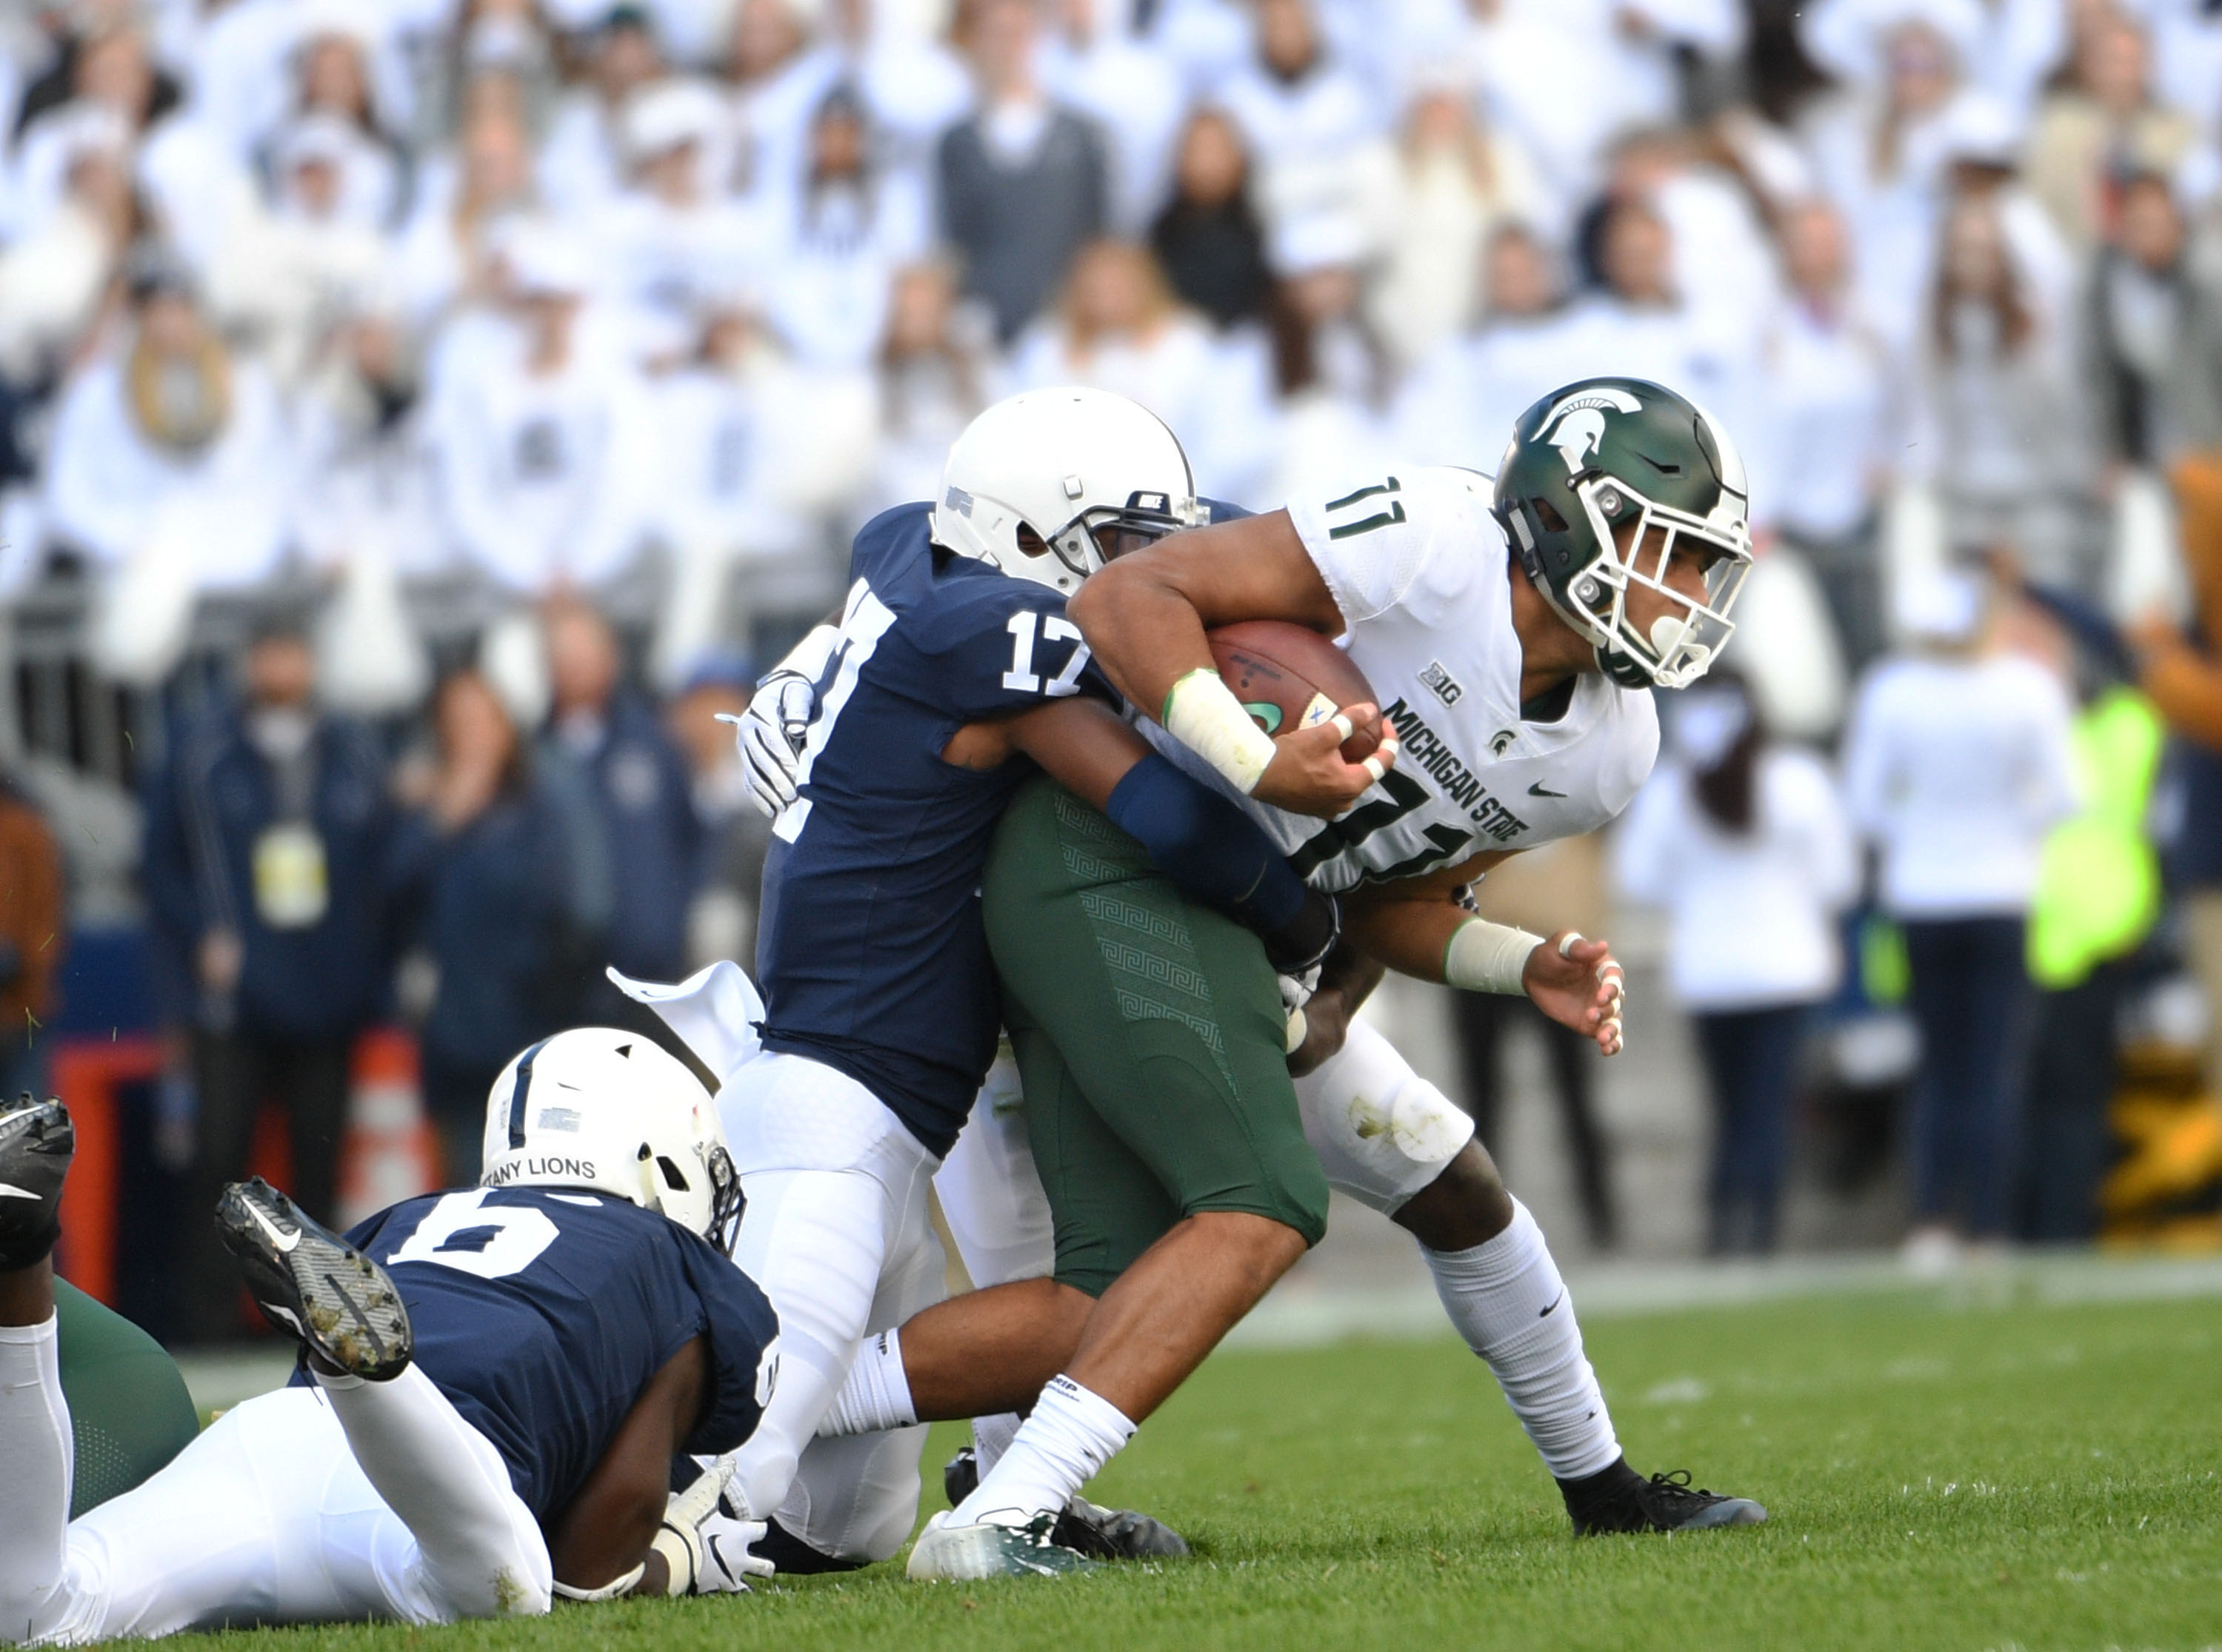 Penn State v. Michigan State 2018 (Photo by Steve Manuel)